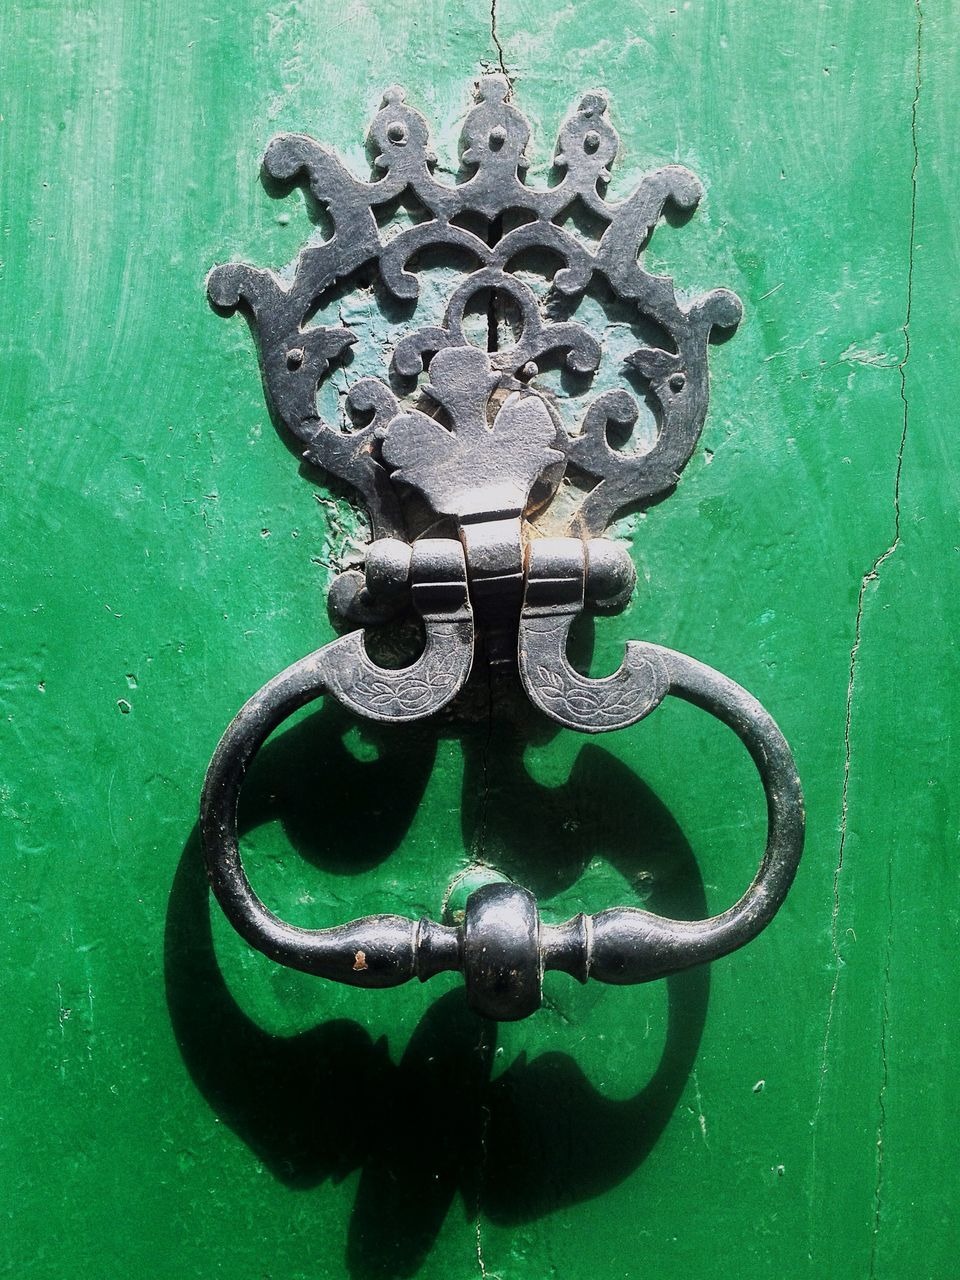 metal, door, close-up, door knocker, outdoors, no people, protection, green color, day, full frame